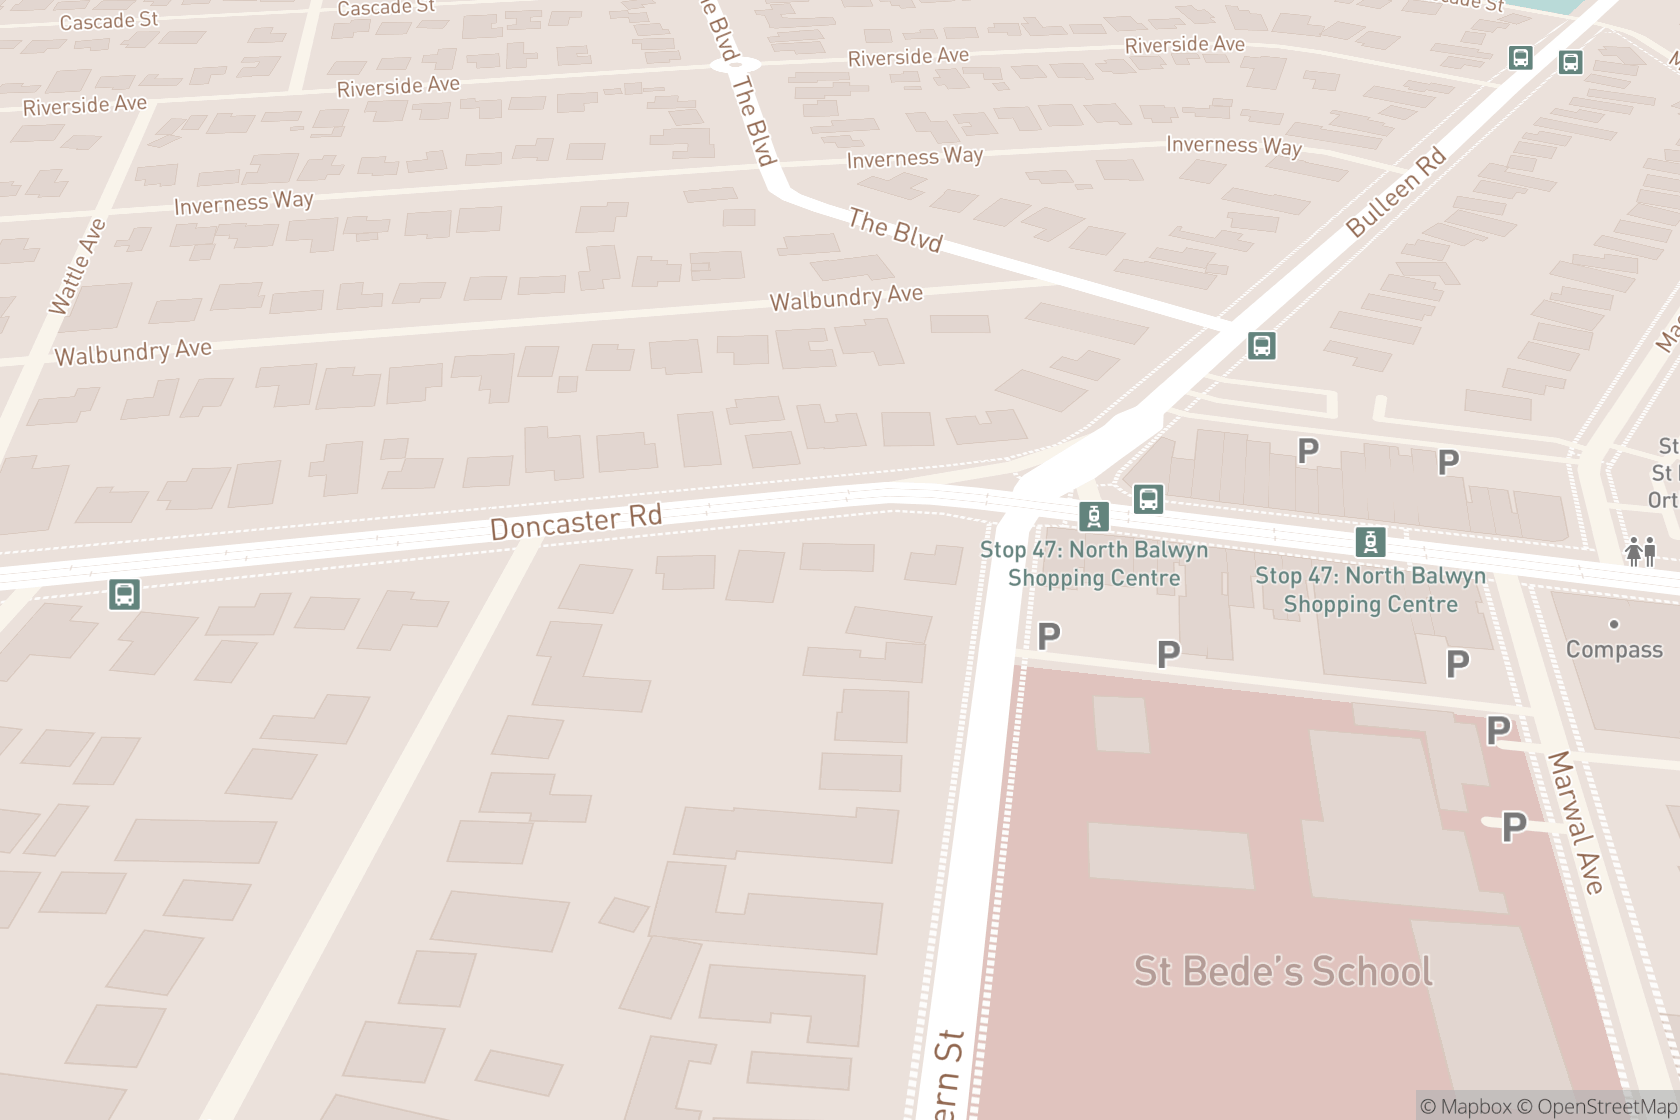 North Balwyn Physiotherapy Clinic map location